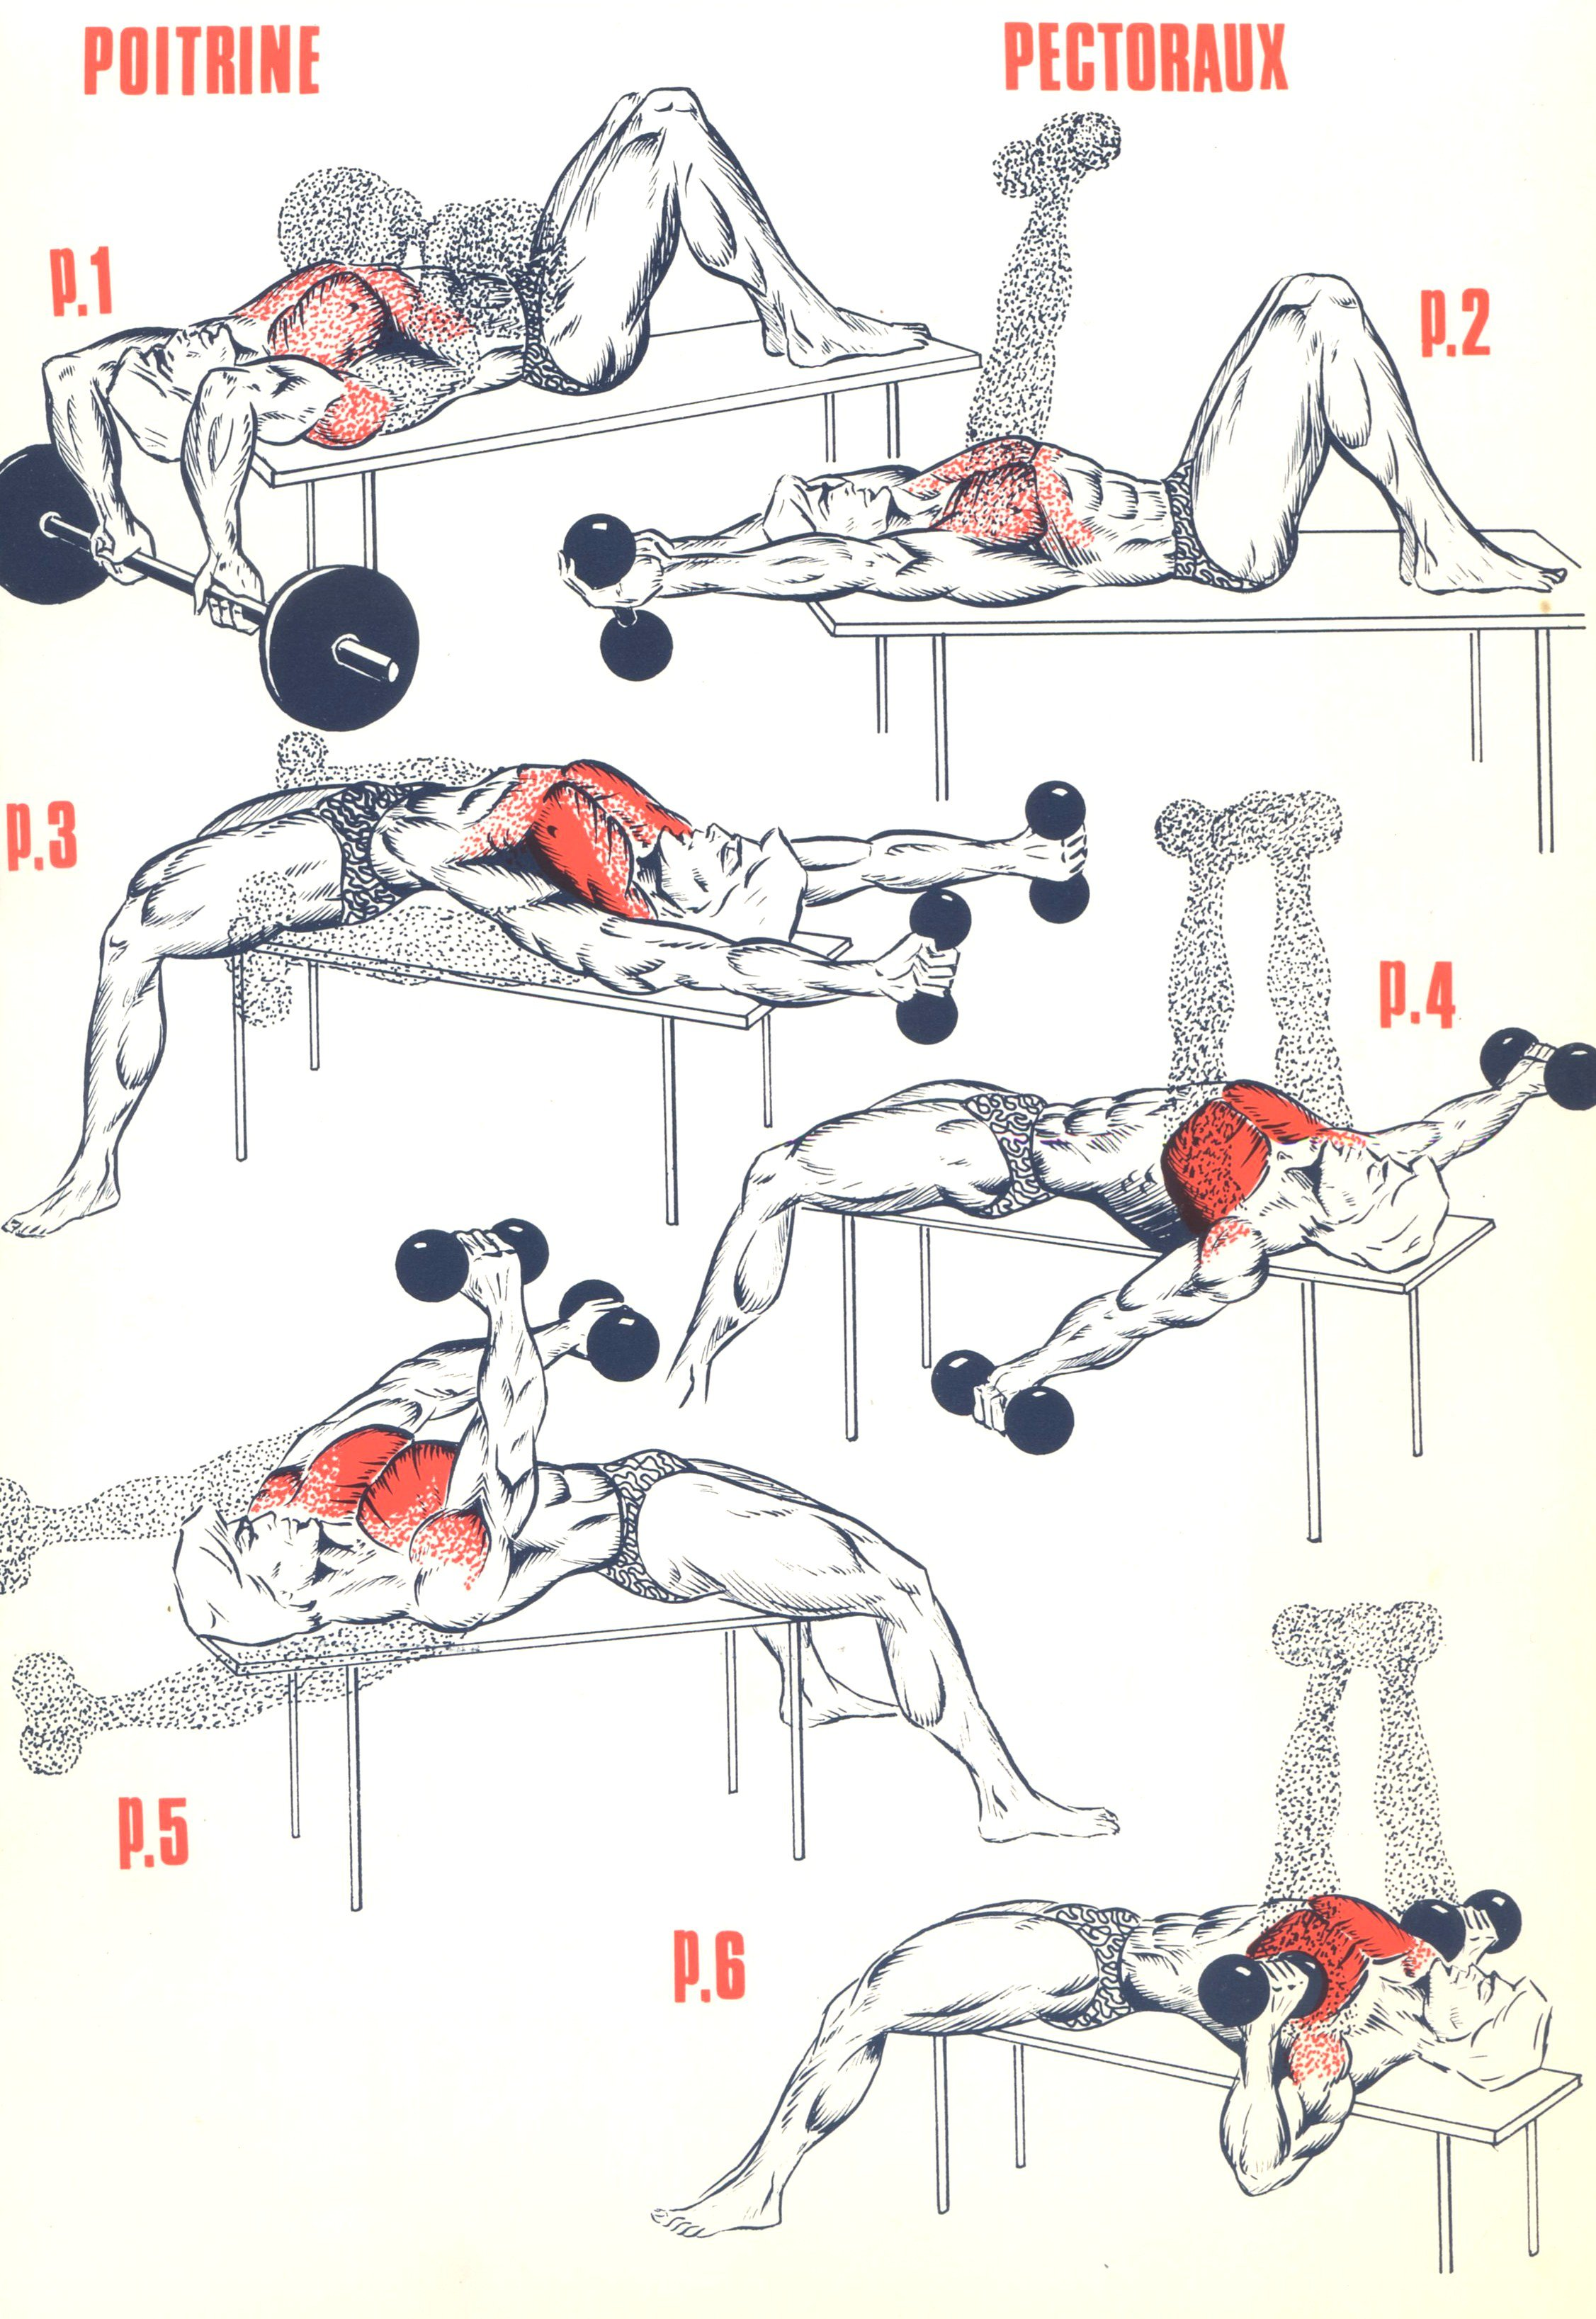 Exercices musculation pectoraux